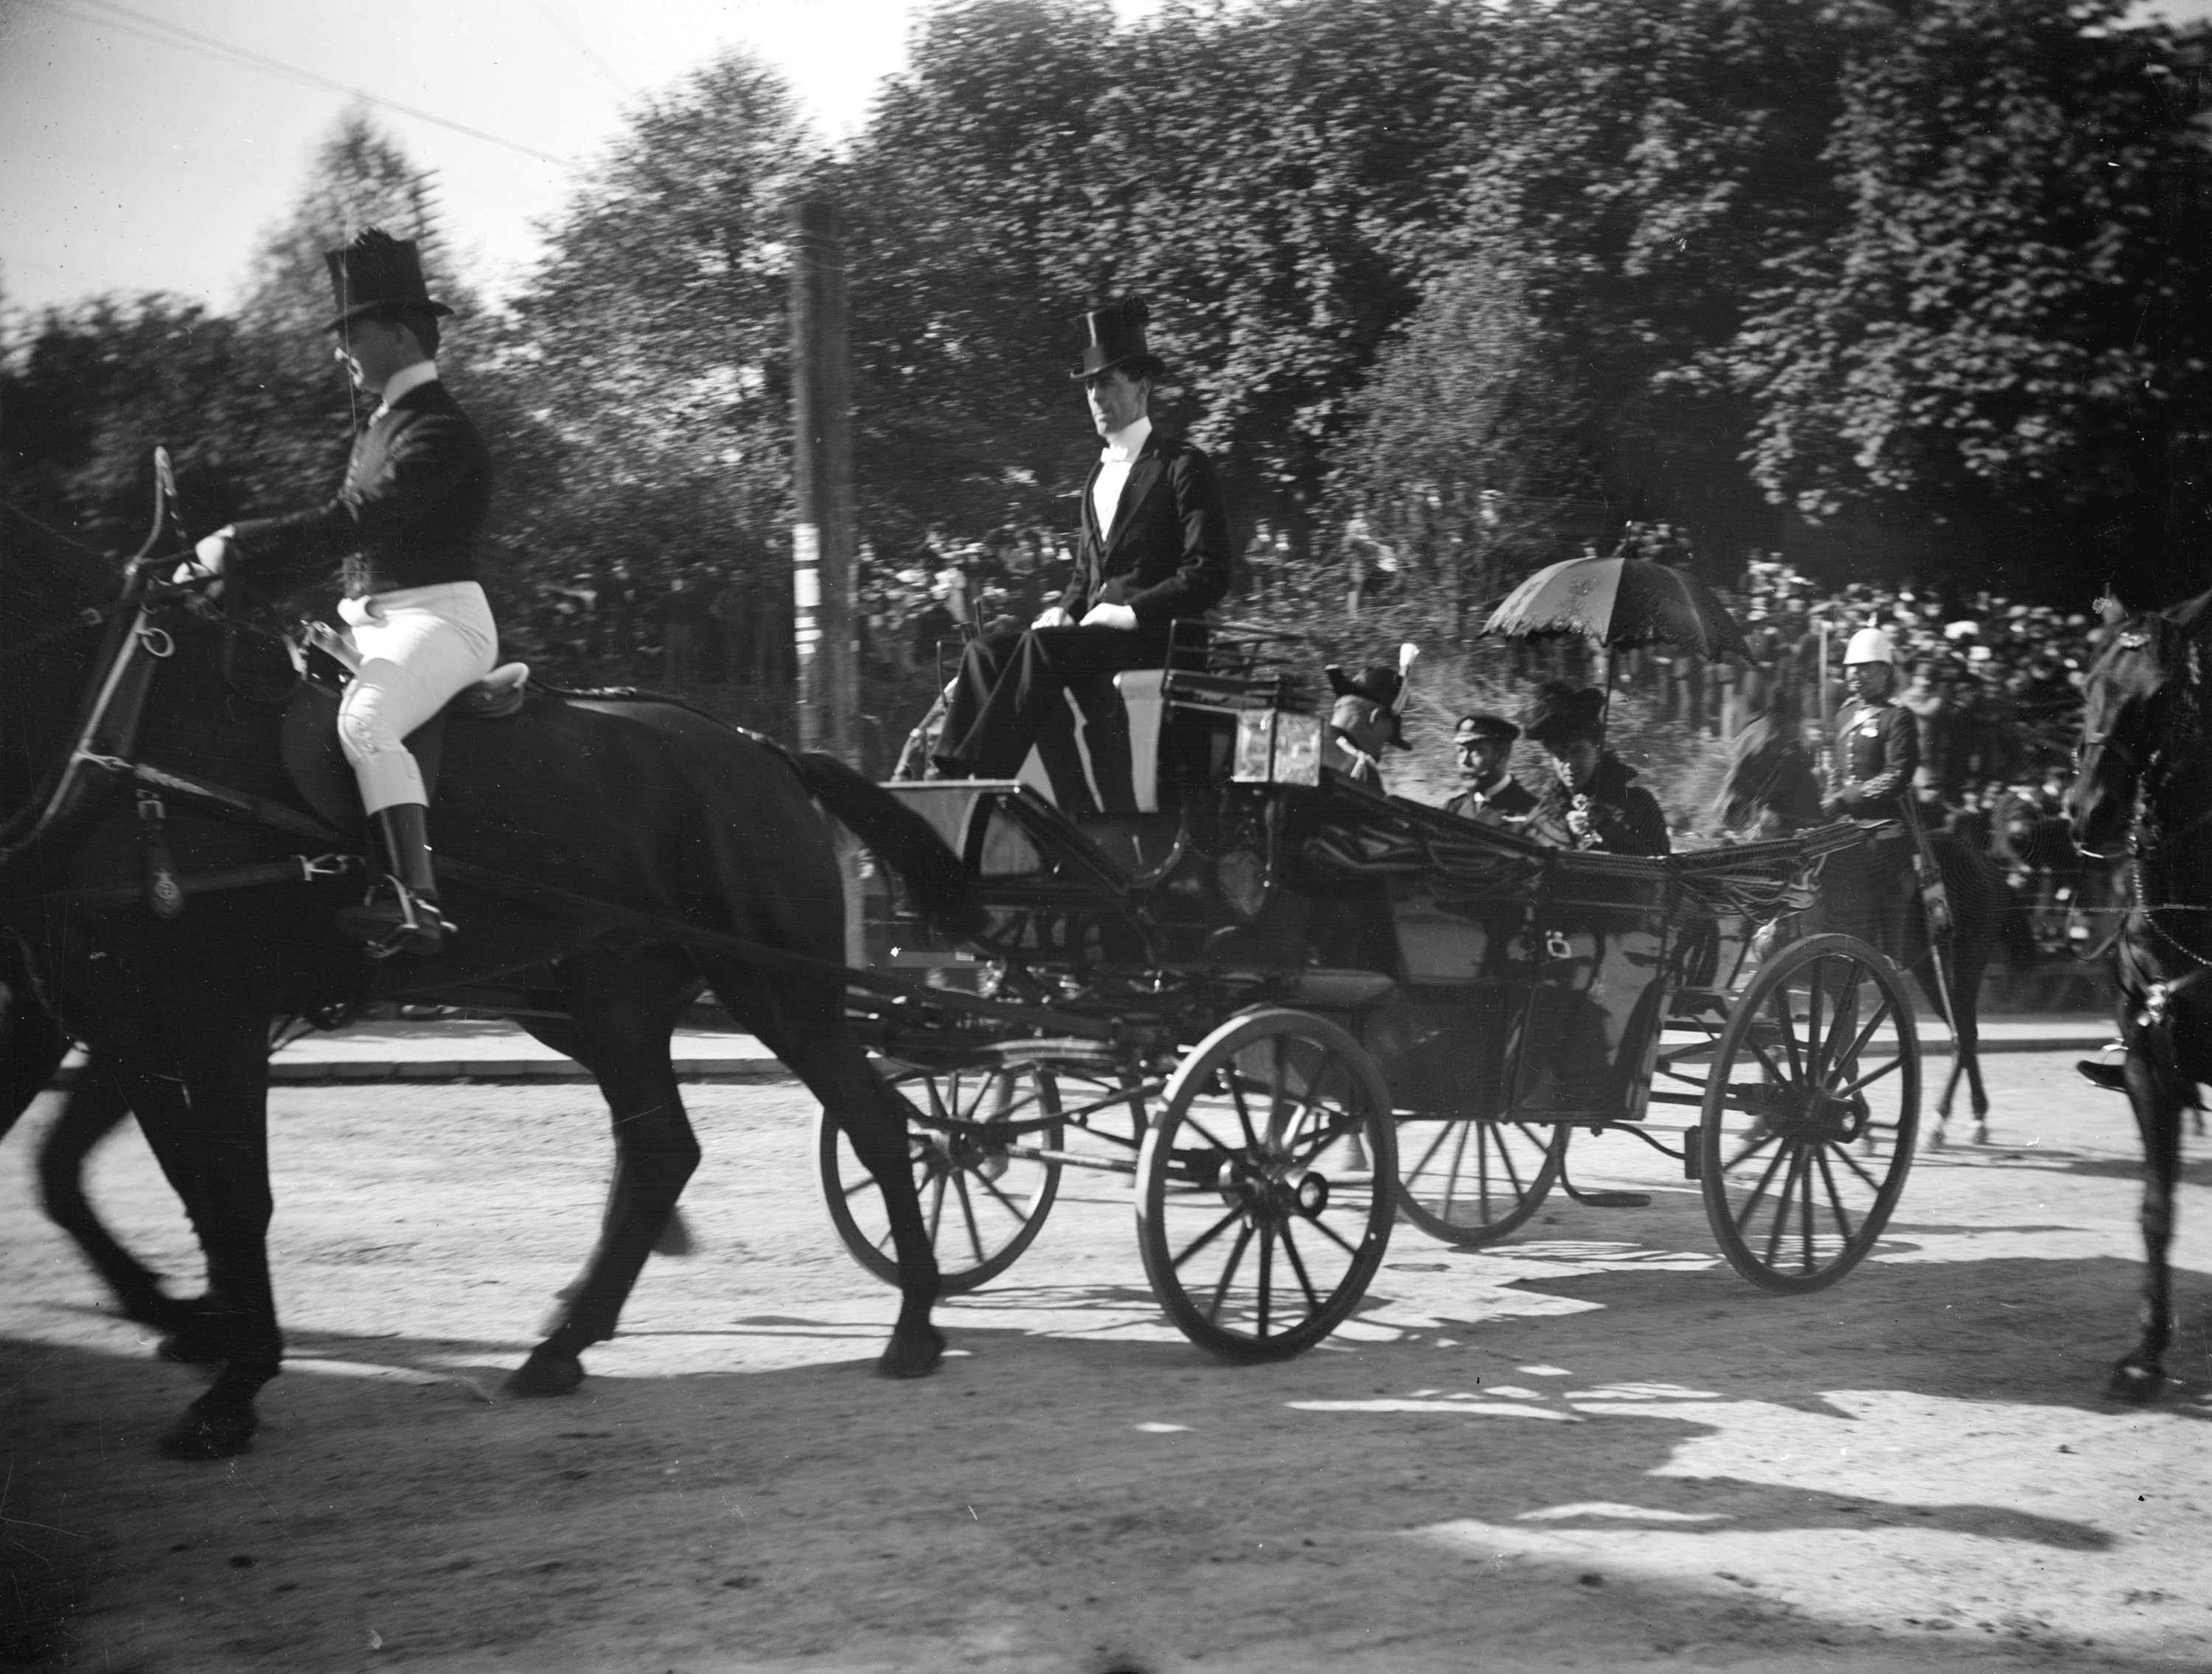 Duke and Duchess of Cornwall and York travelling down a Vancouver street in carriage in 1901 (Public domain)